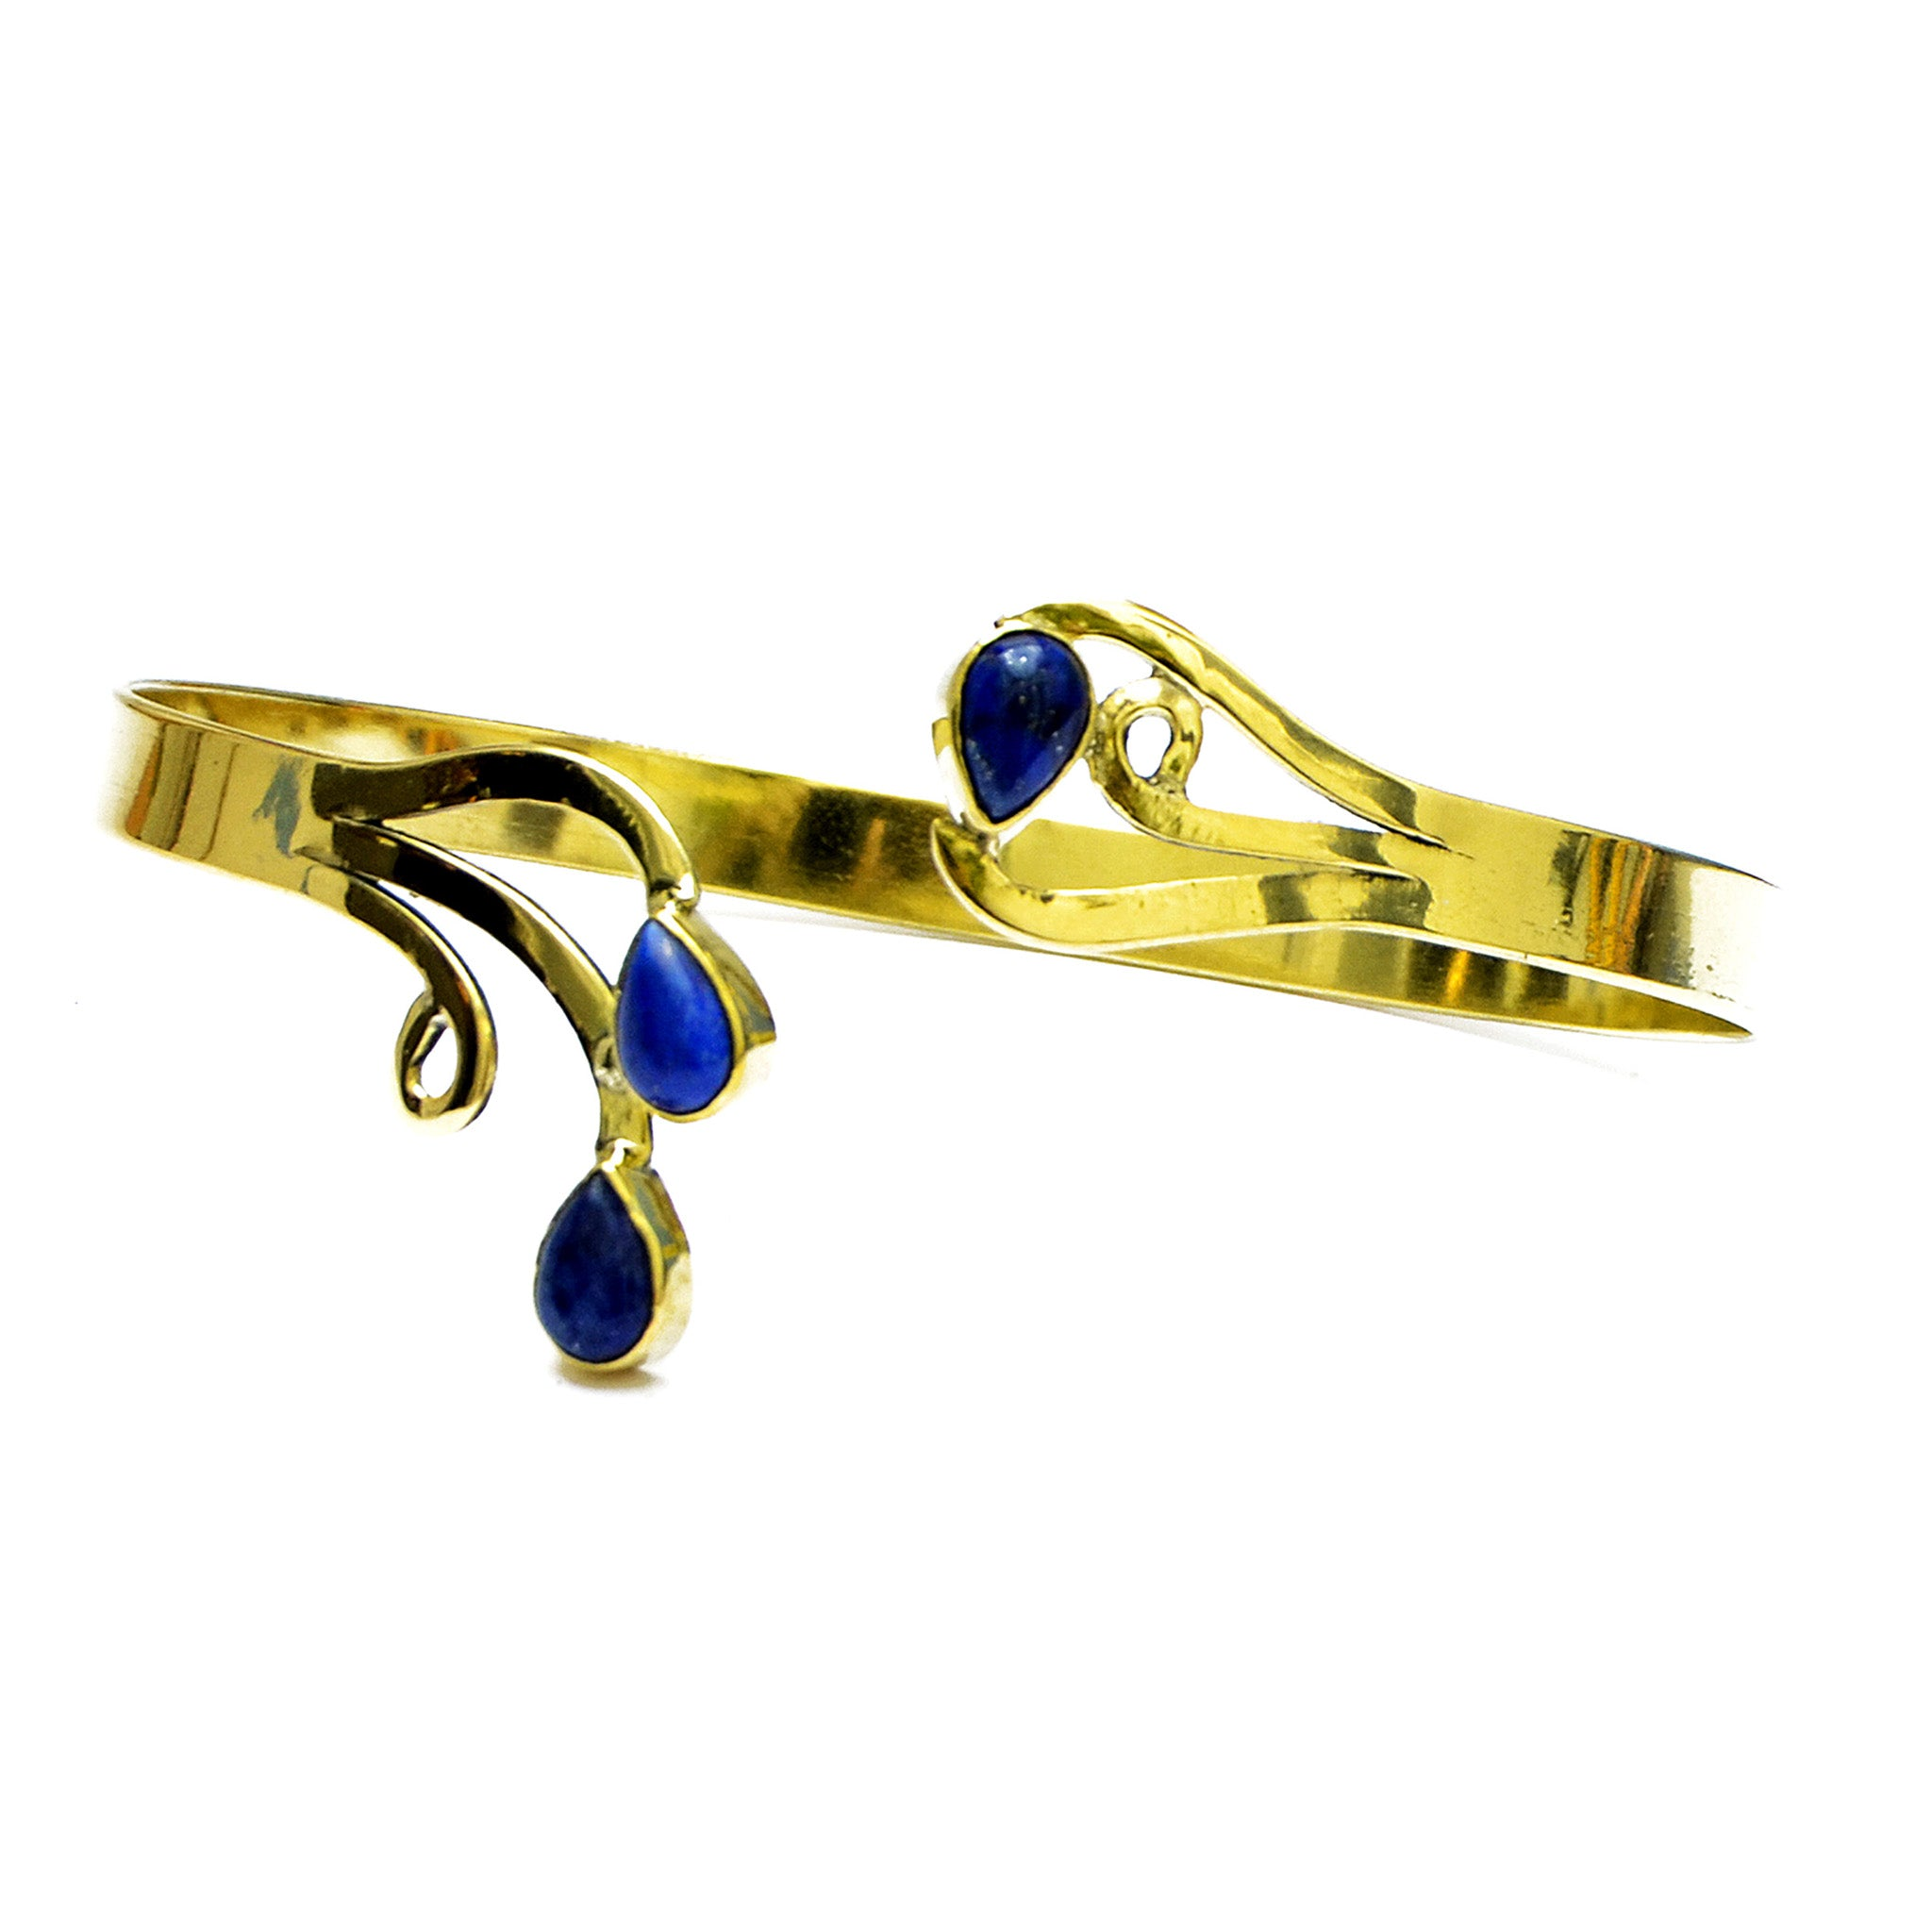 Indian ethnic gold bracelet with lapis lazuli gemstones